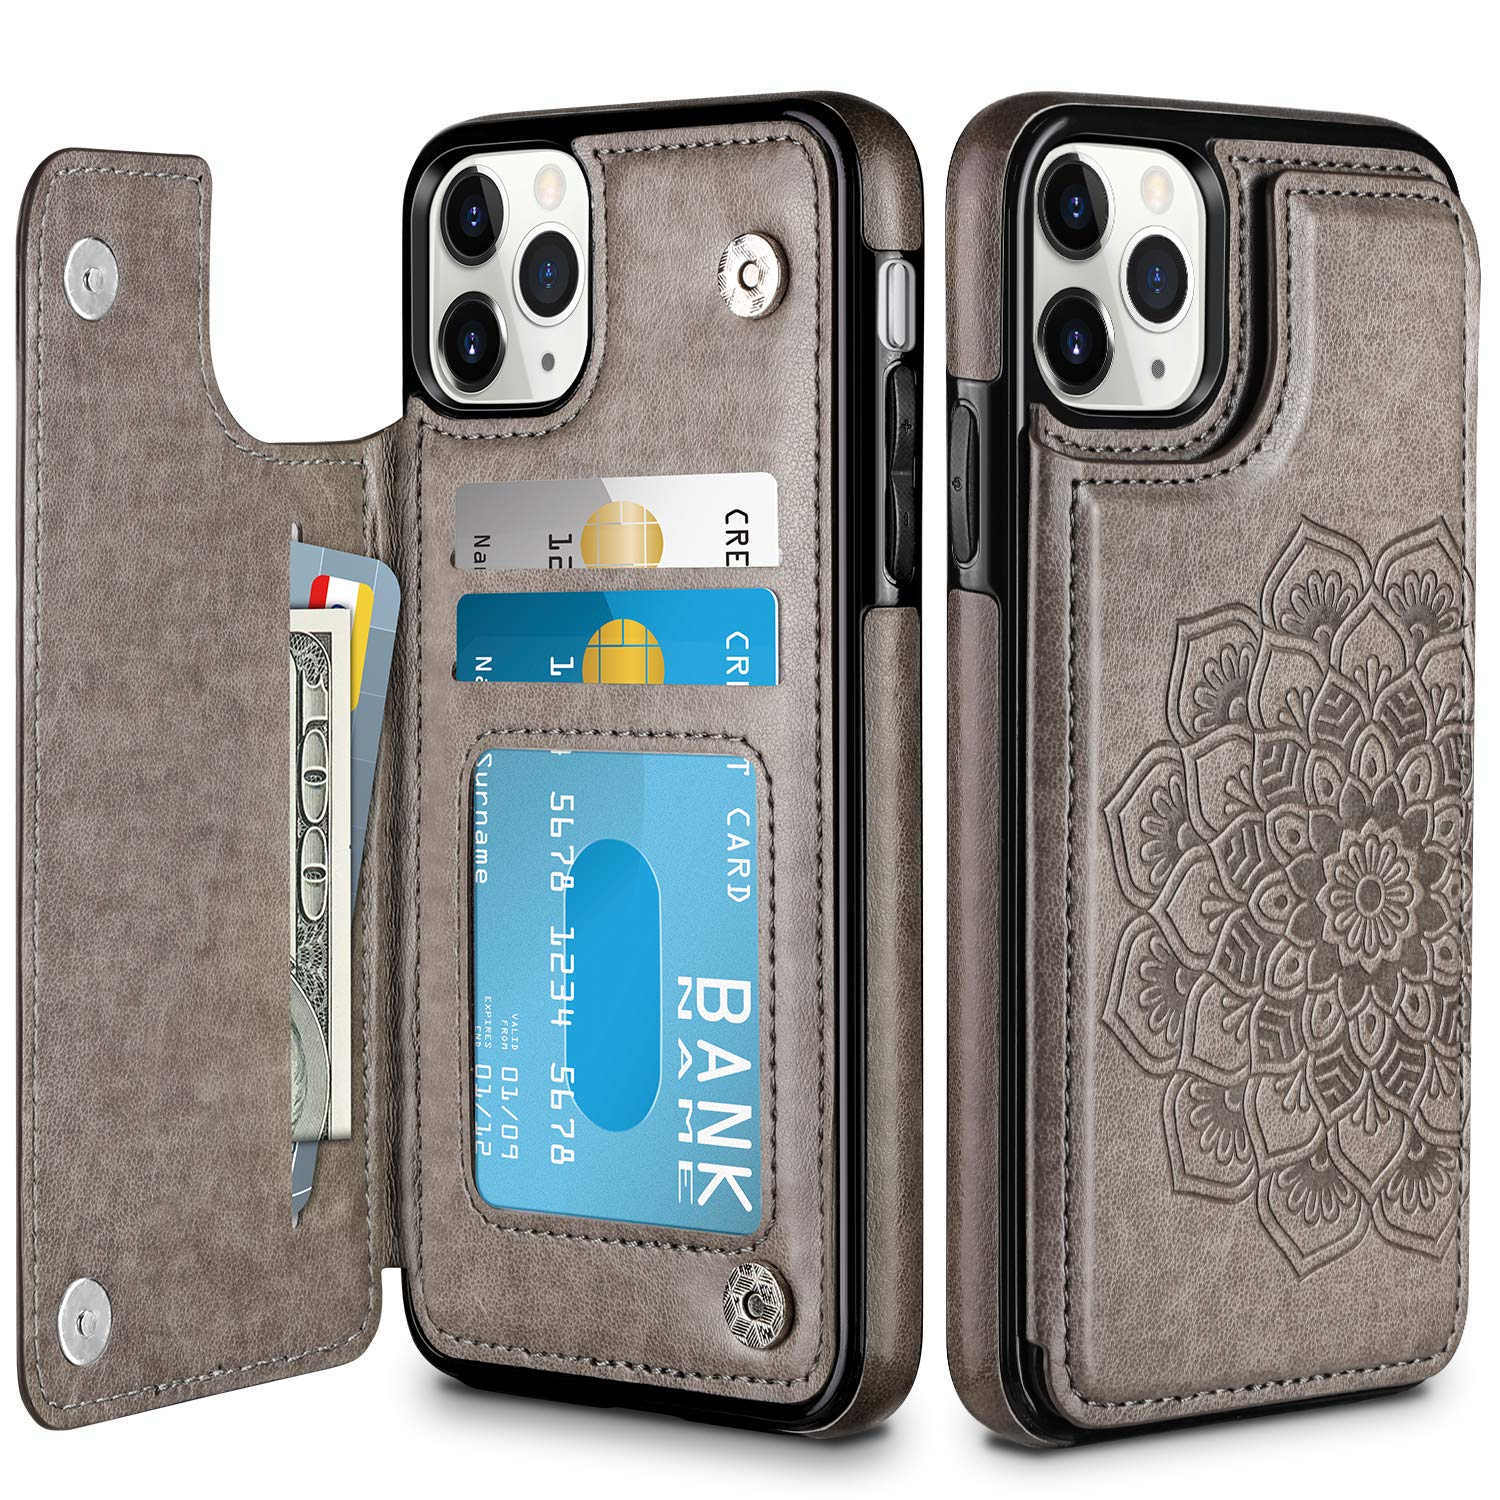 HianDier Wallet Case for iPhone 11 Pro Max Case Slim Protective Case with Credit Card Slot Holder Flip Folio Soft PU Leather Magnetic Closure Cover for 2019 iPhone 11 Pro Max 6.5 Inches, Mandala Gray